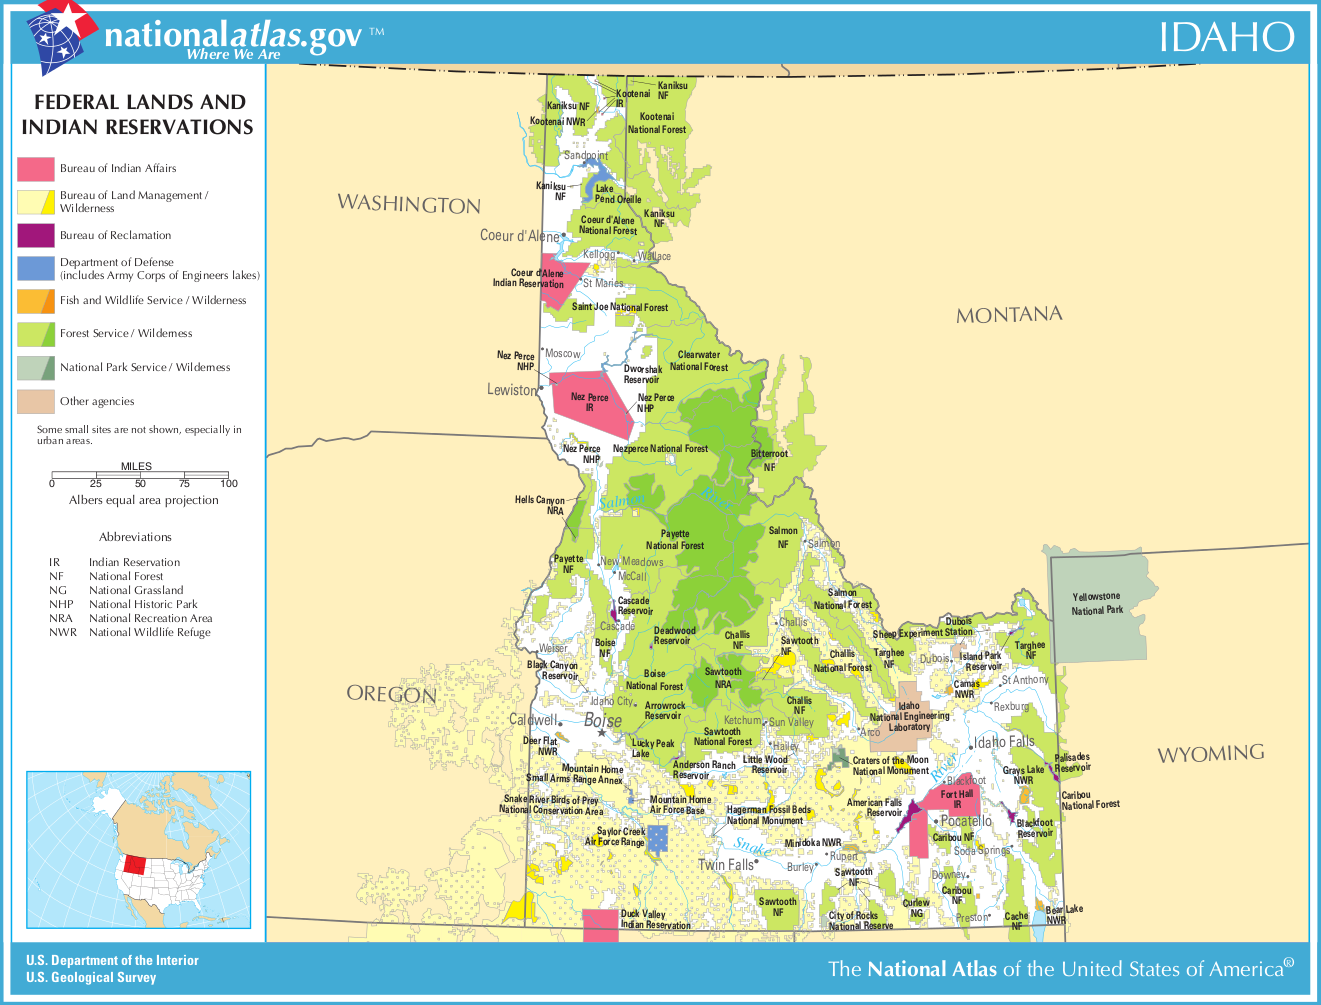 idaho public land map with Karte Parks Indianerreservate on Upper Missouri River Breaks National Monument additionally Idaho Otc Elk Tags further Cryptozoo additionally Fracking Induced Earthquakes Highlighted New Usgs Map additionally Spokane County Consider No Shooting Zone Proposals Today.